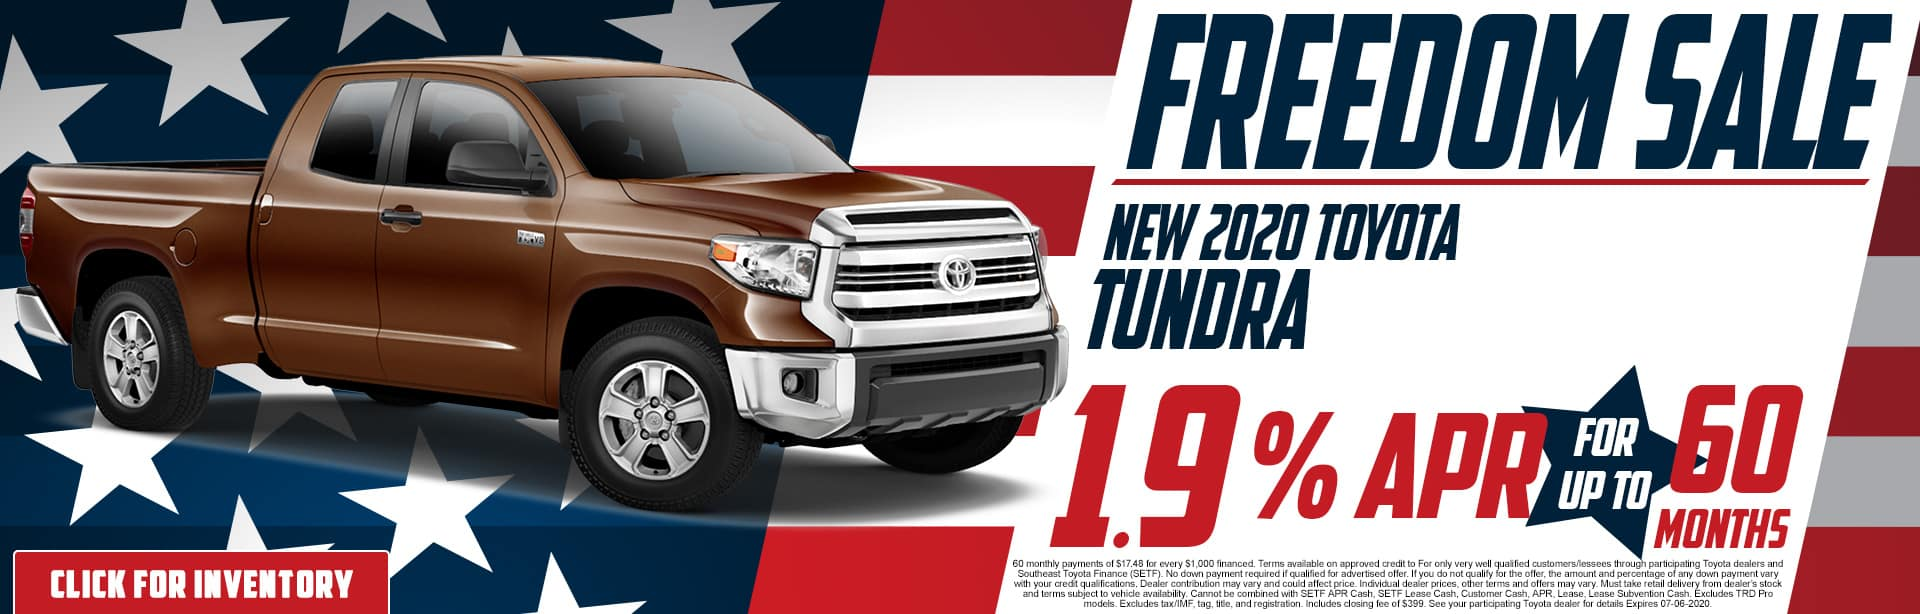 2020 Toyota Tundra | 1.9% APR for 60 Months